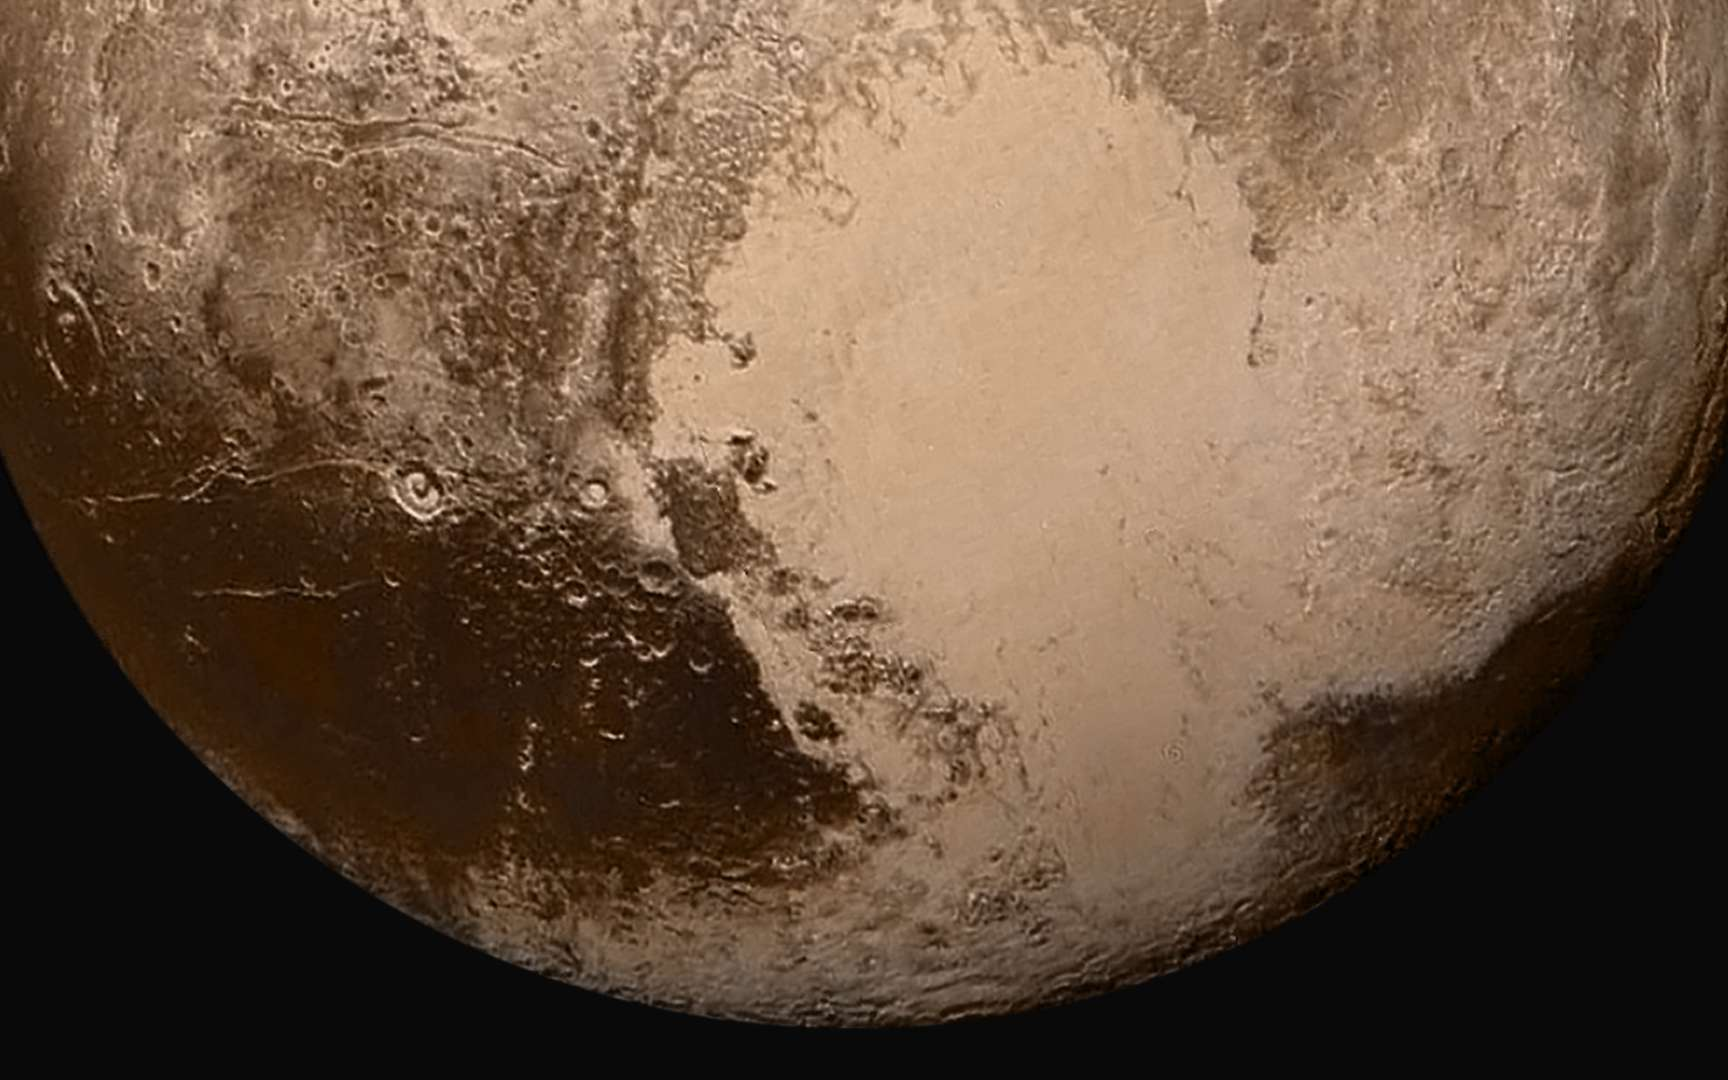 Pluton, vue par la sonde New Horizons, à 450.000 km de distance, au matin du 14 juillet 2015. © Nasa/ John Hopkins University Applied Physics Laboratory/Southwest Research Institute